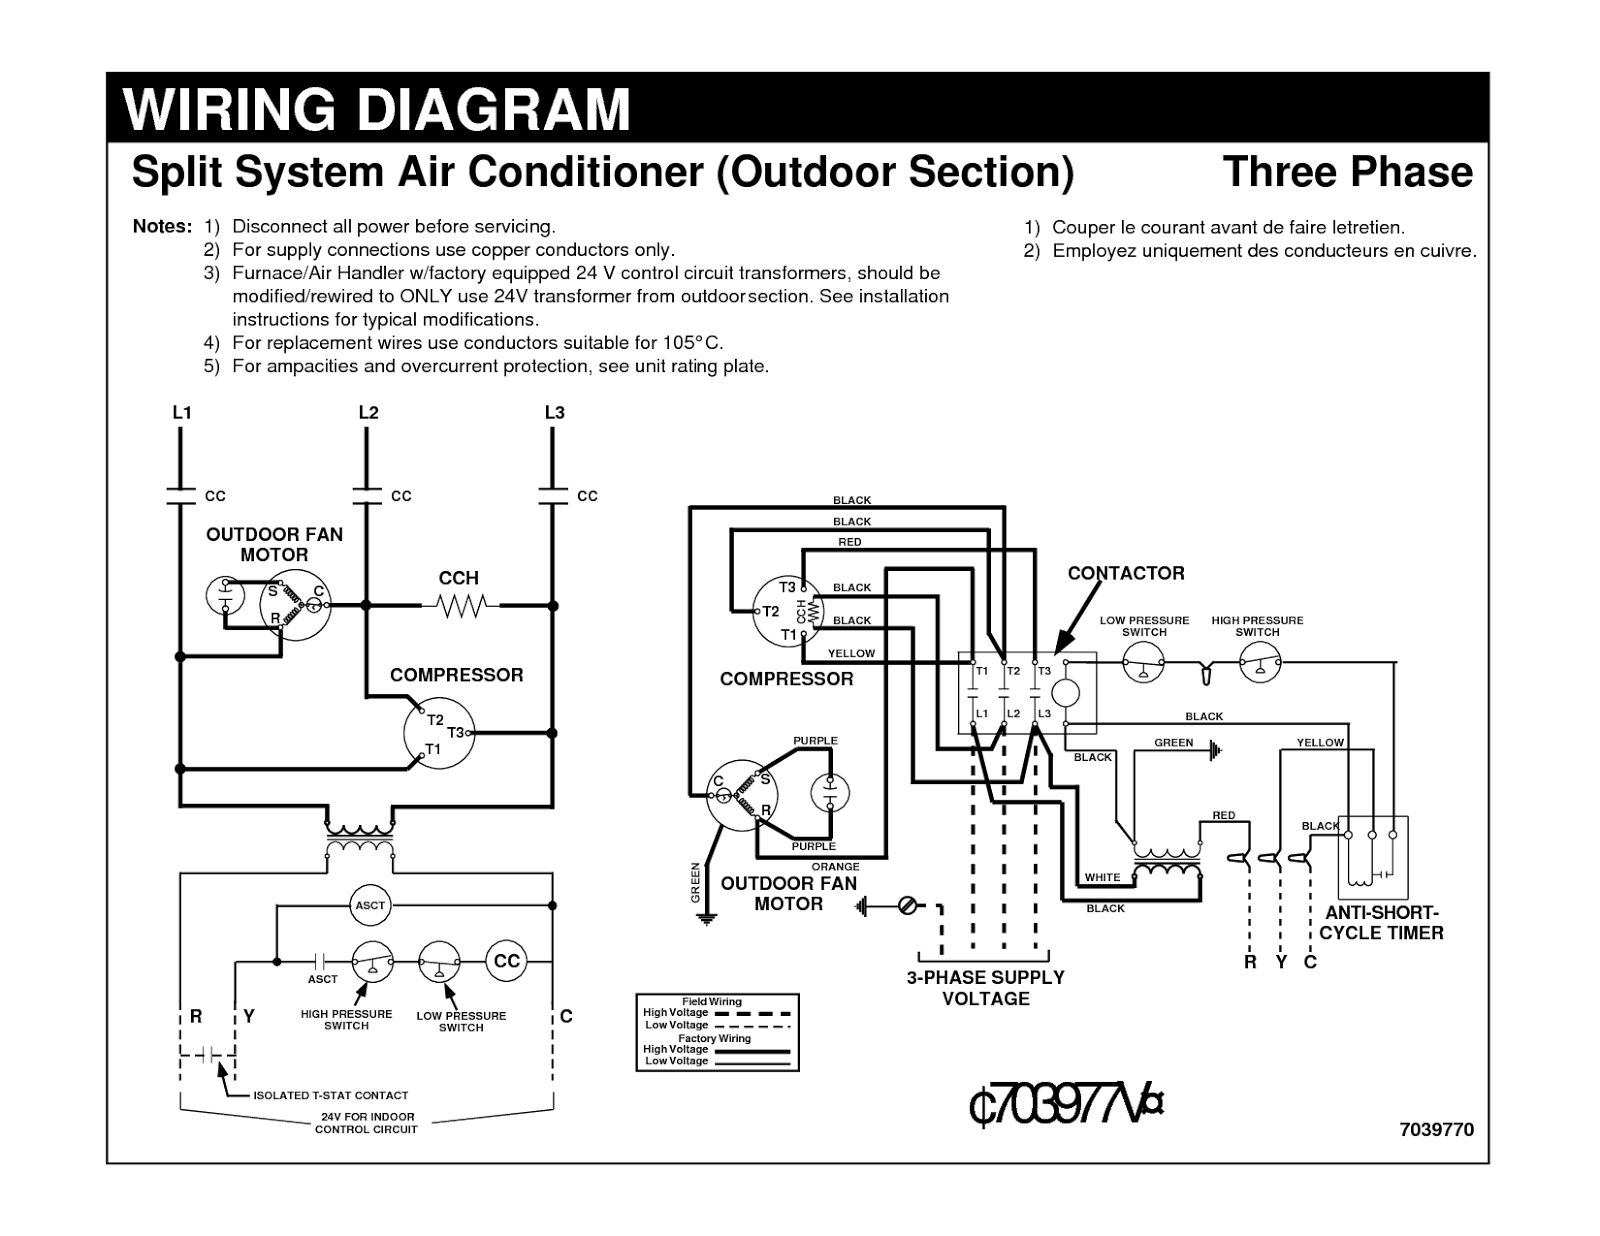 aircon electrical wiring diagram wiring diagram used car aircon wiring diagram [ 1600 x 1236 Pixel ]